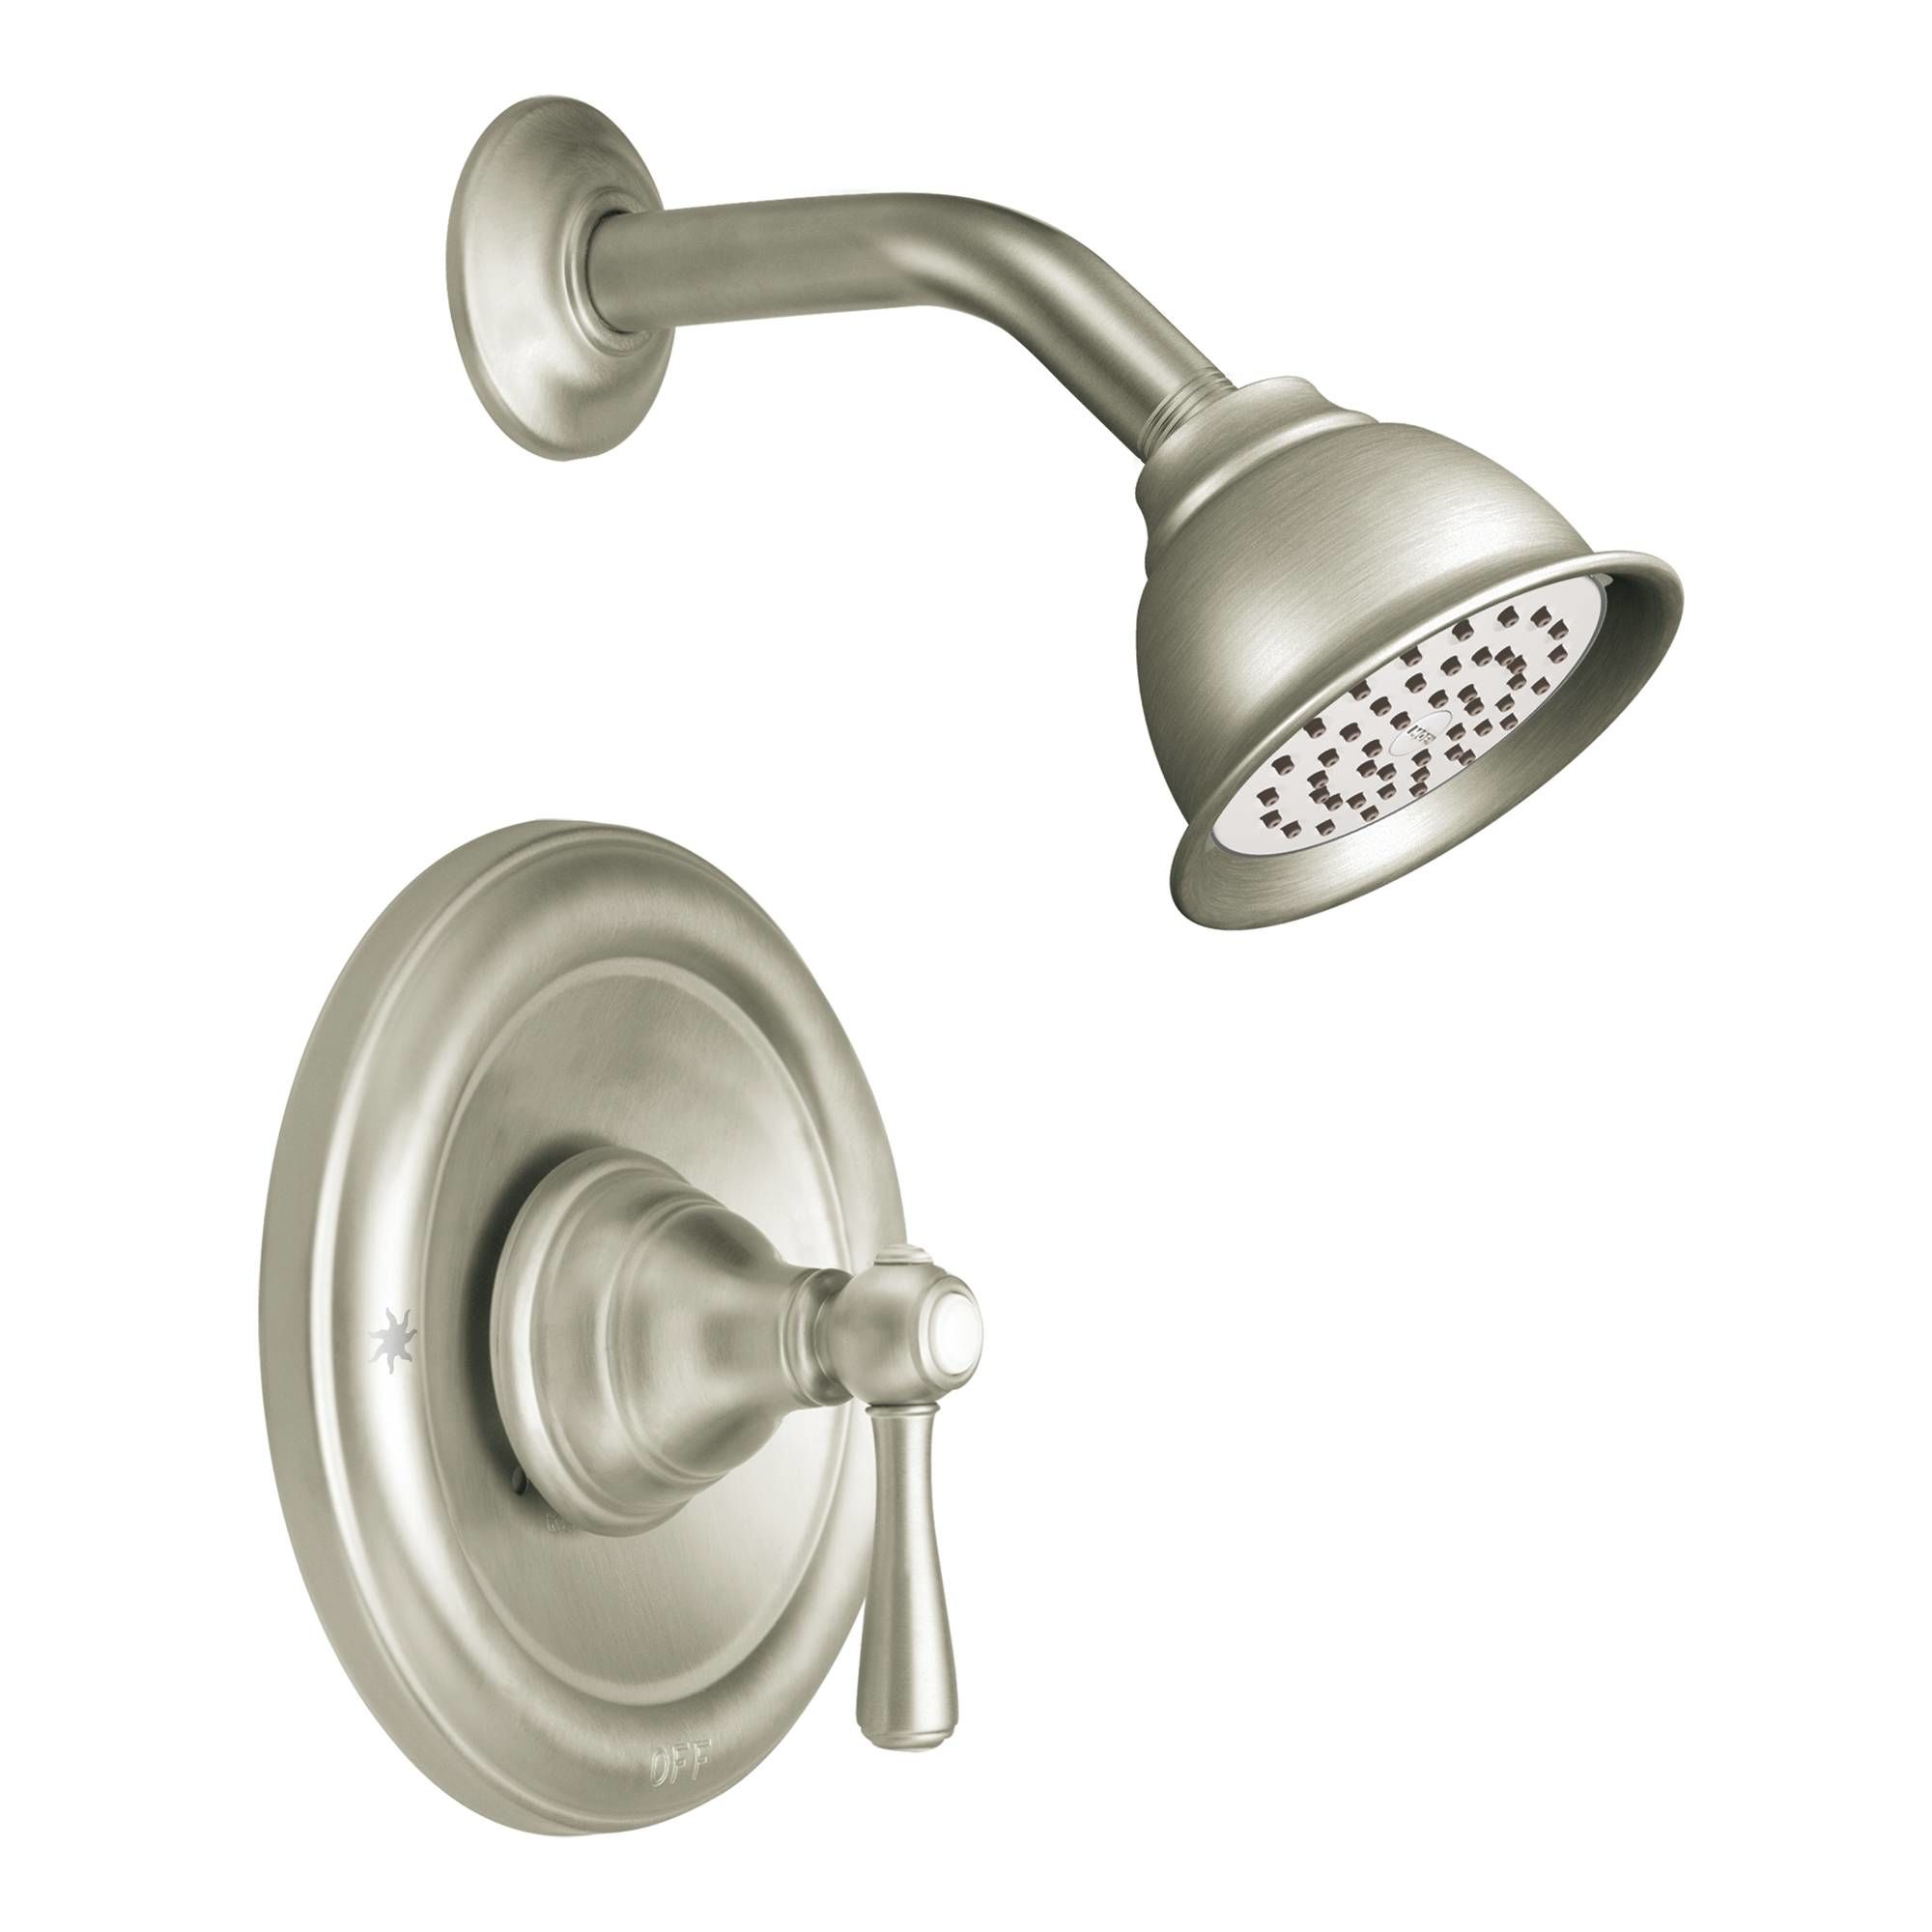 handle pact com from only balanced moen shower faucet m chateau single valve trim less collection the chrome pressure